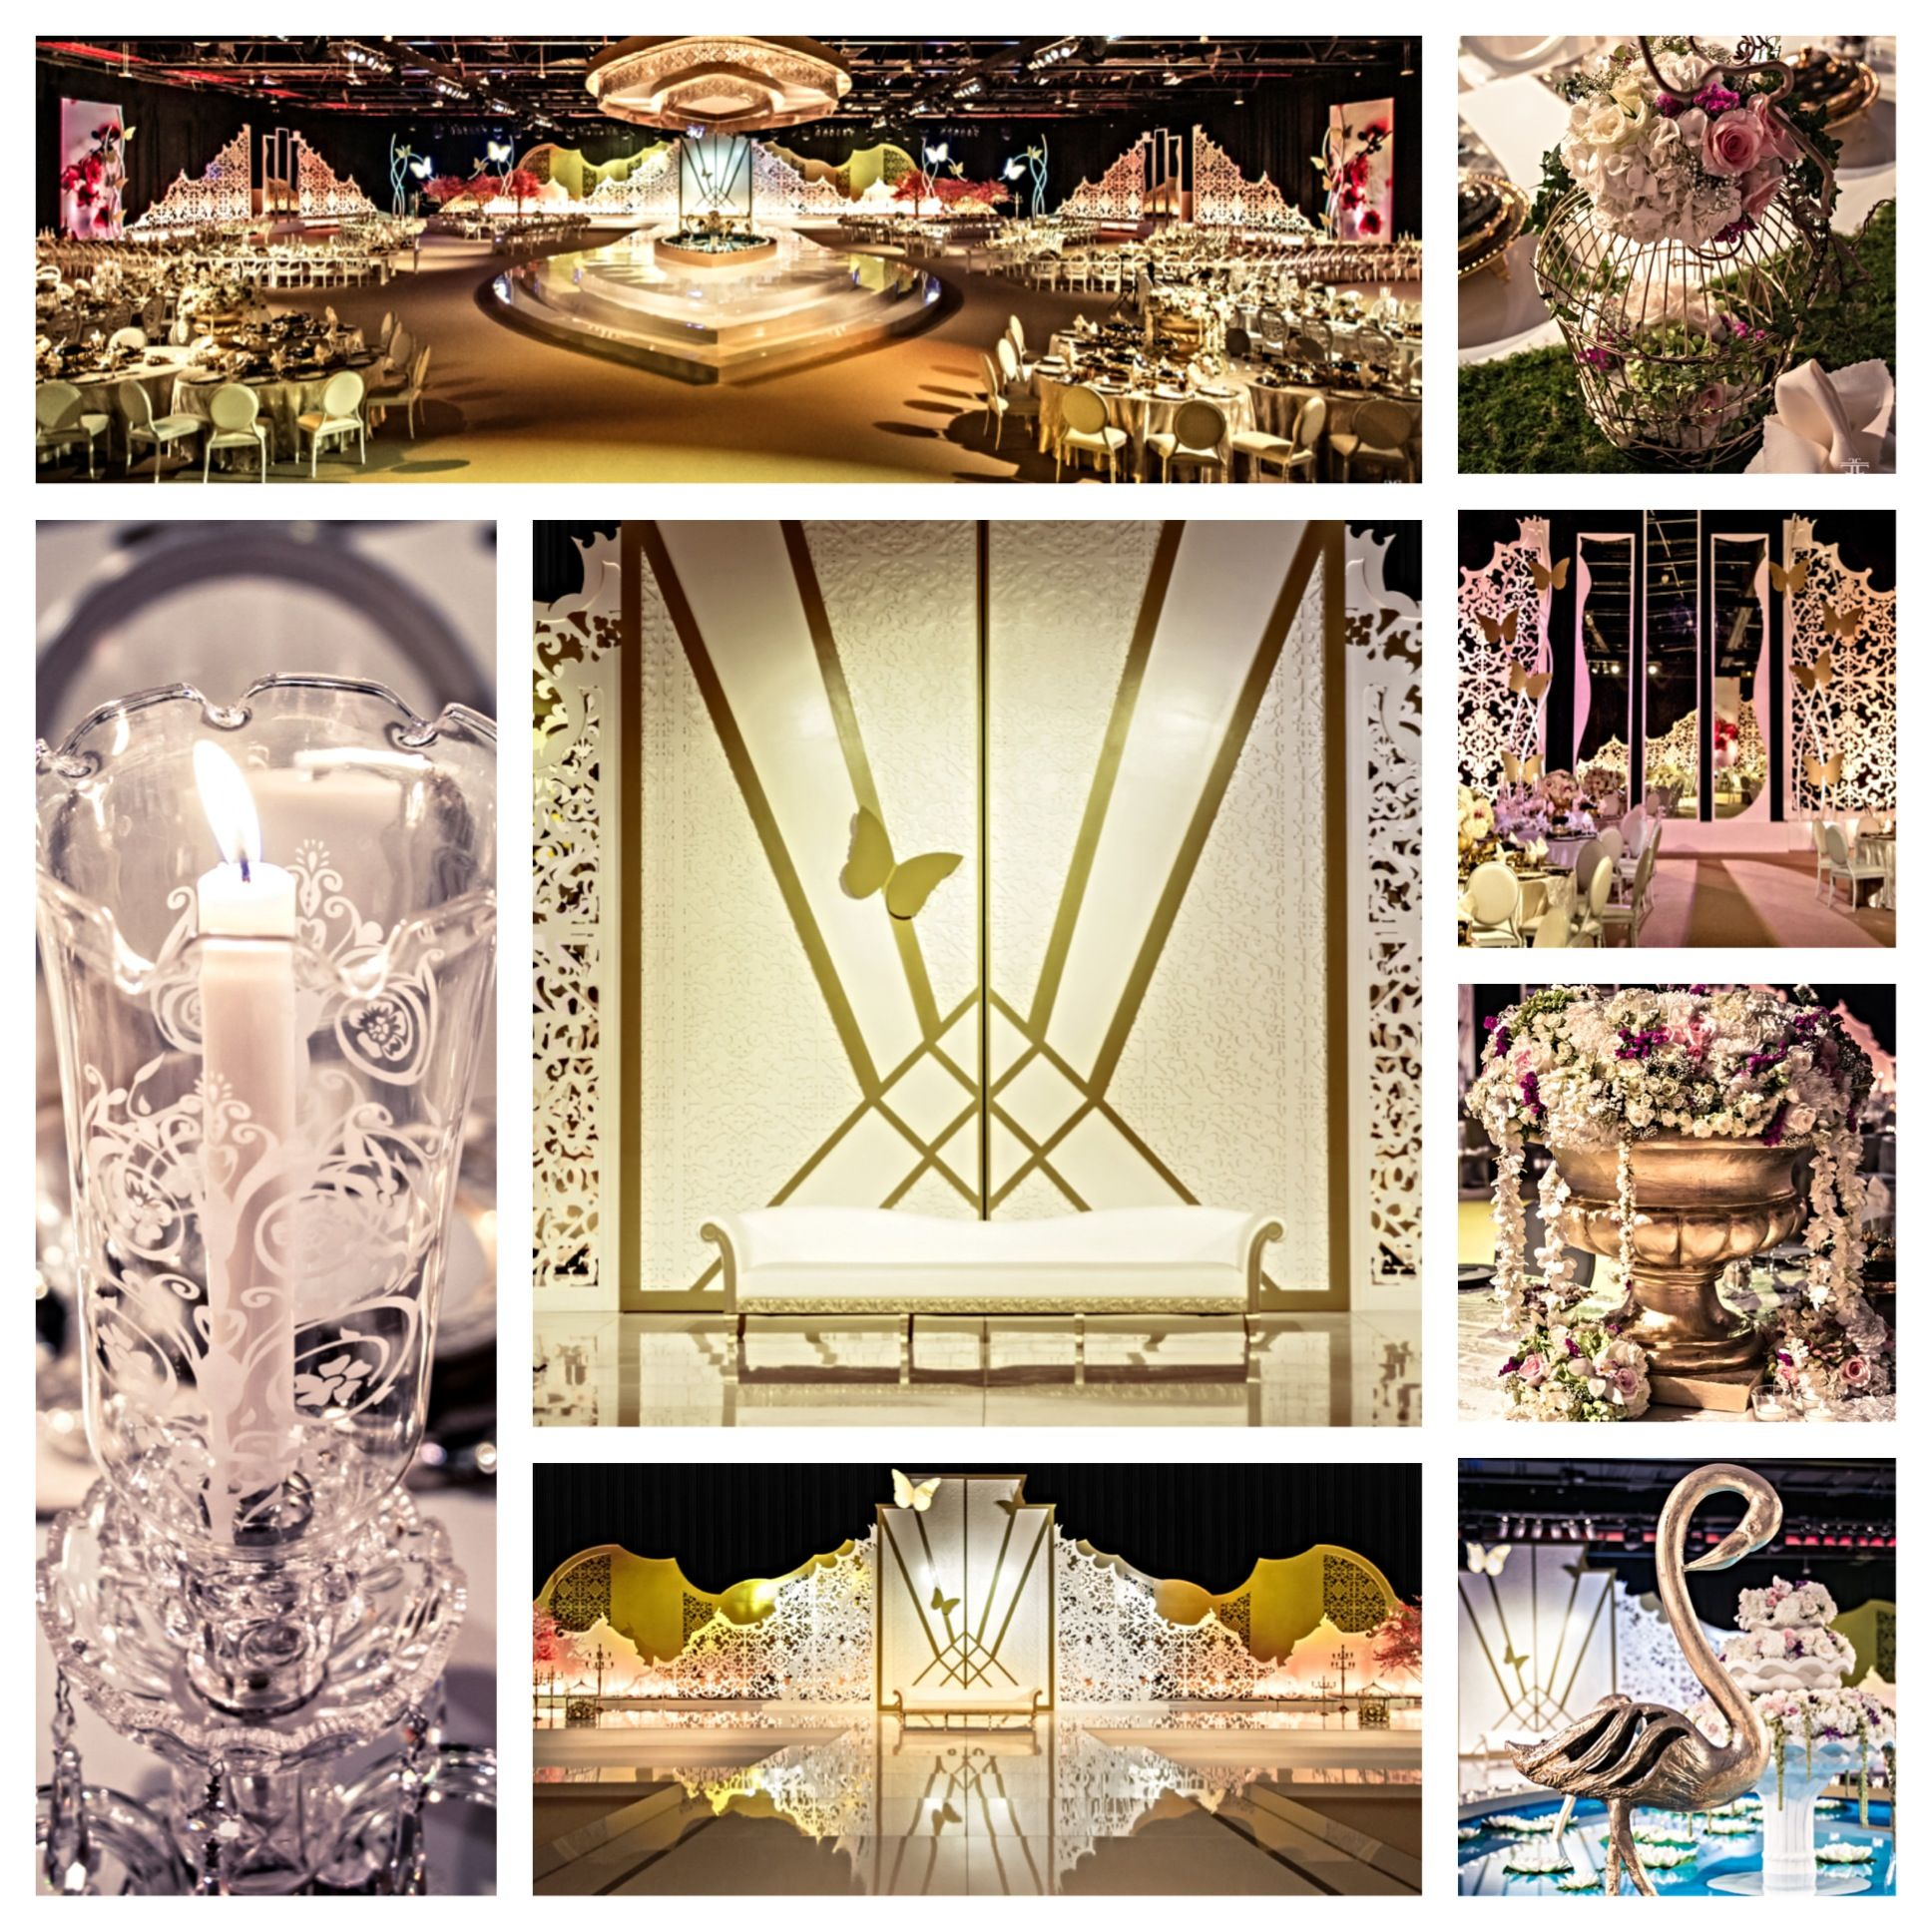 Wedding decorations gate  The Secret Garden WeddingThe heart of this grand wedding is in its